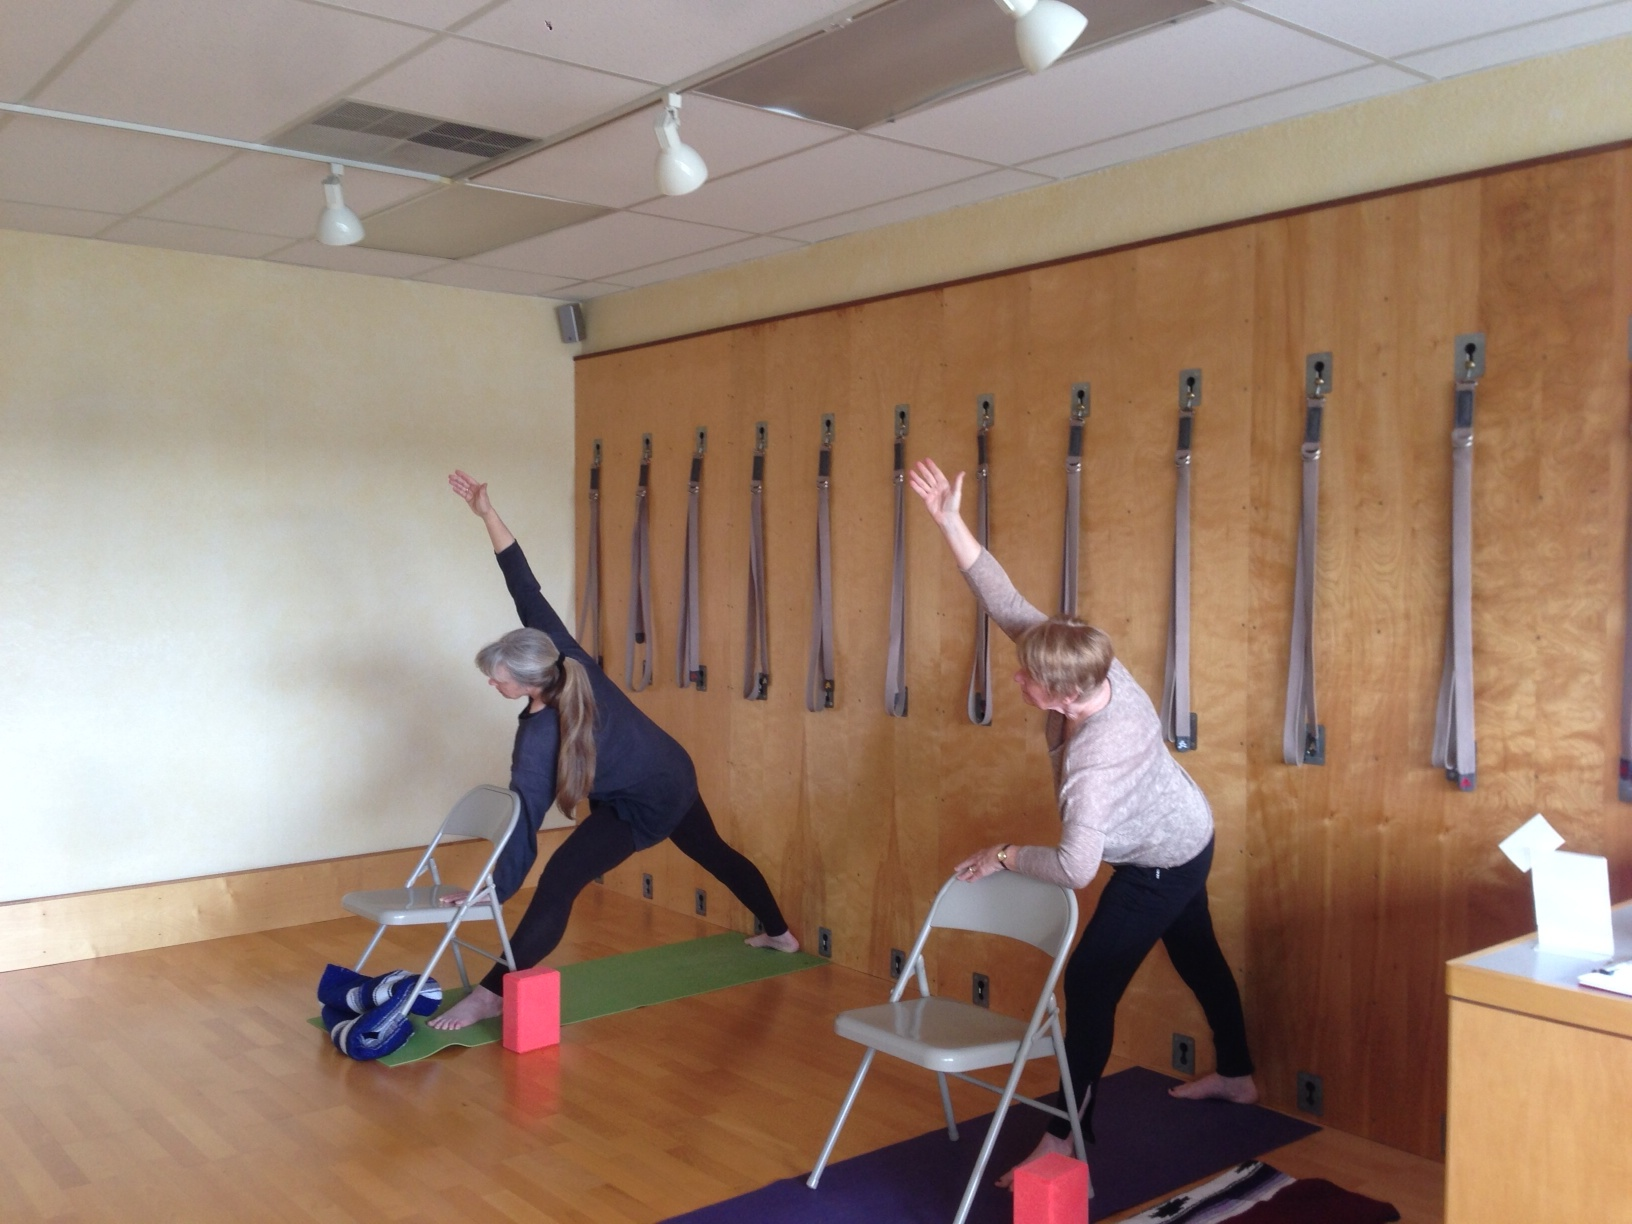 Susan and Jill demonstrate Utthita Trikonasana (triangle pose) with skill.